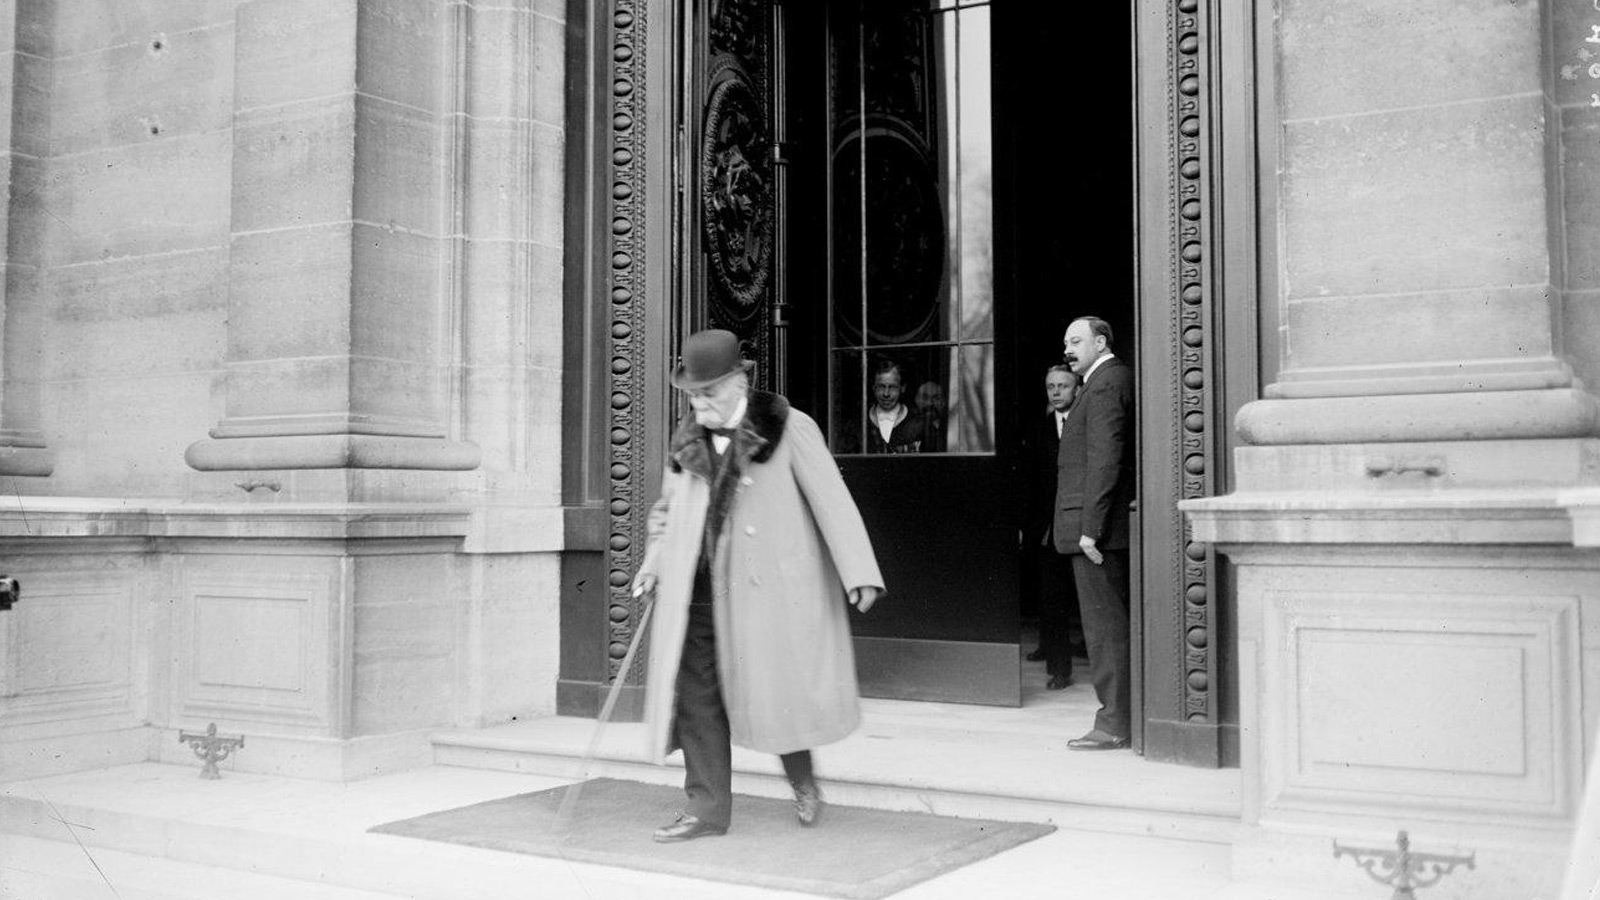 Banner showing man leaving a building. Large wooden doors stand behind him.